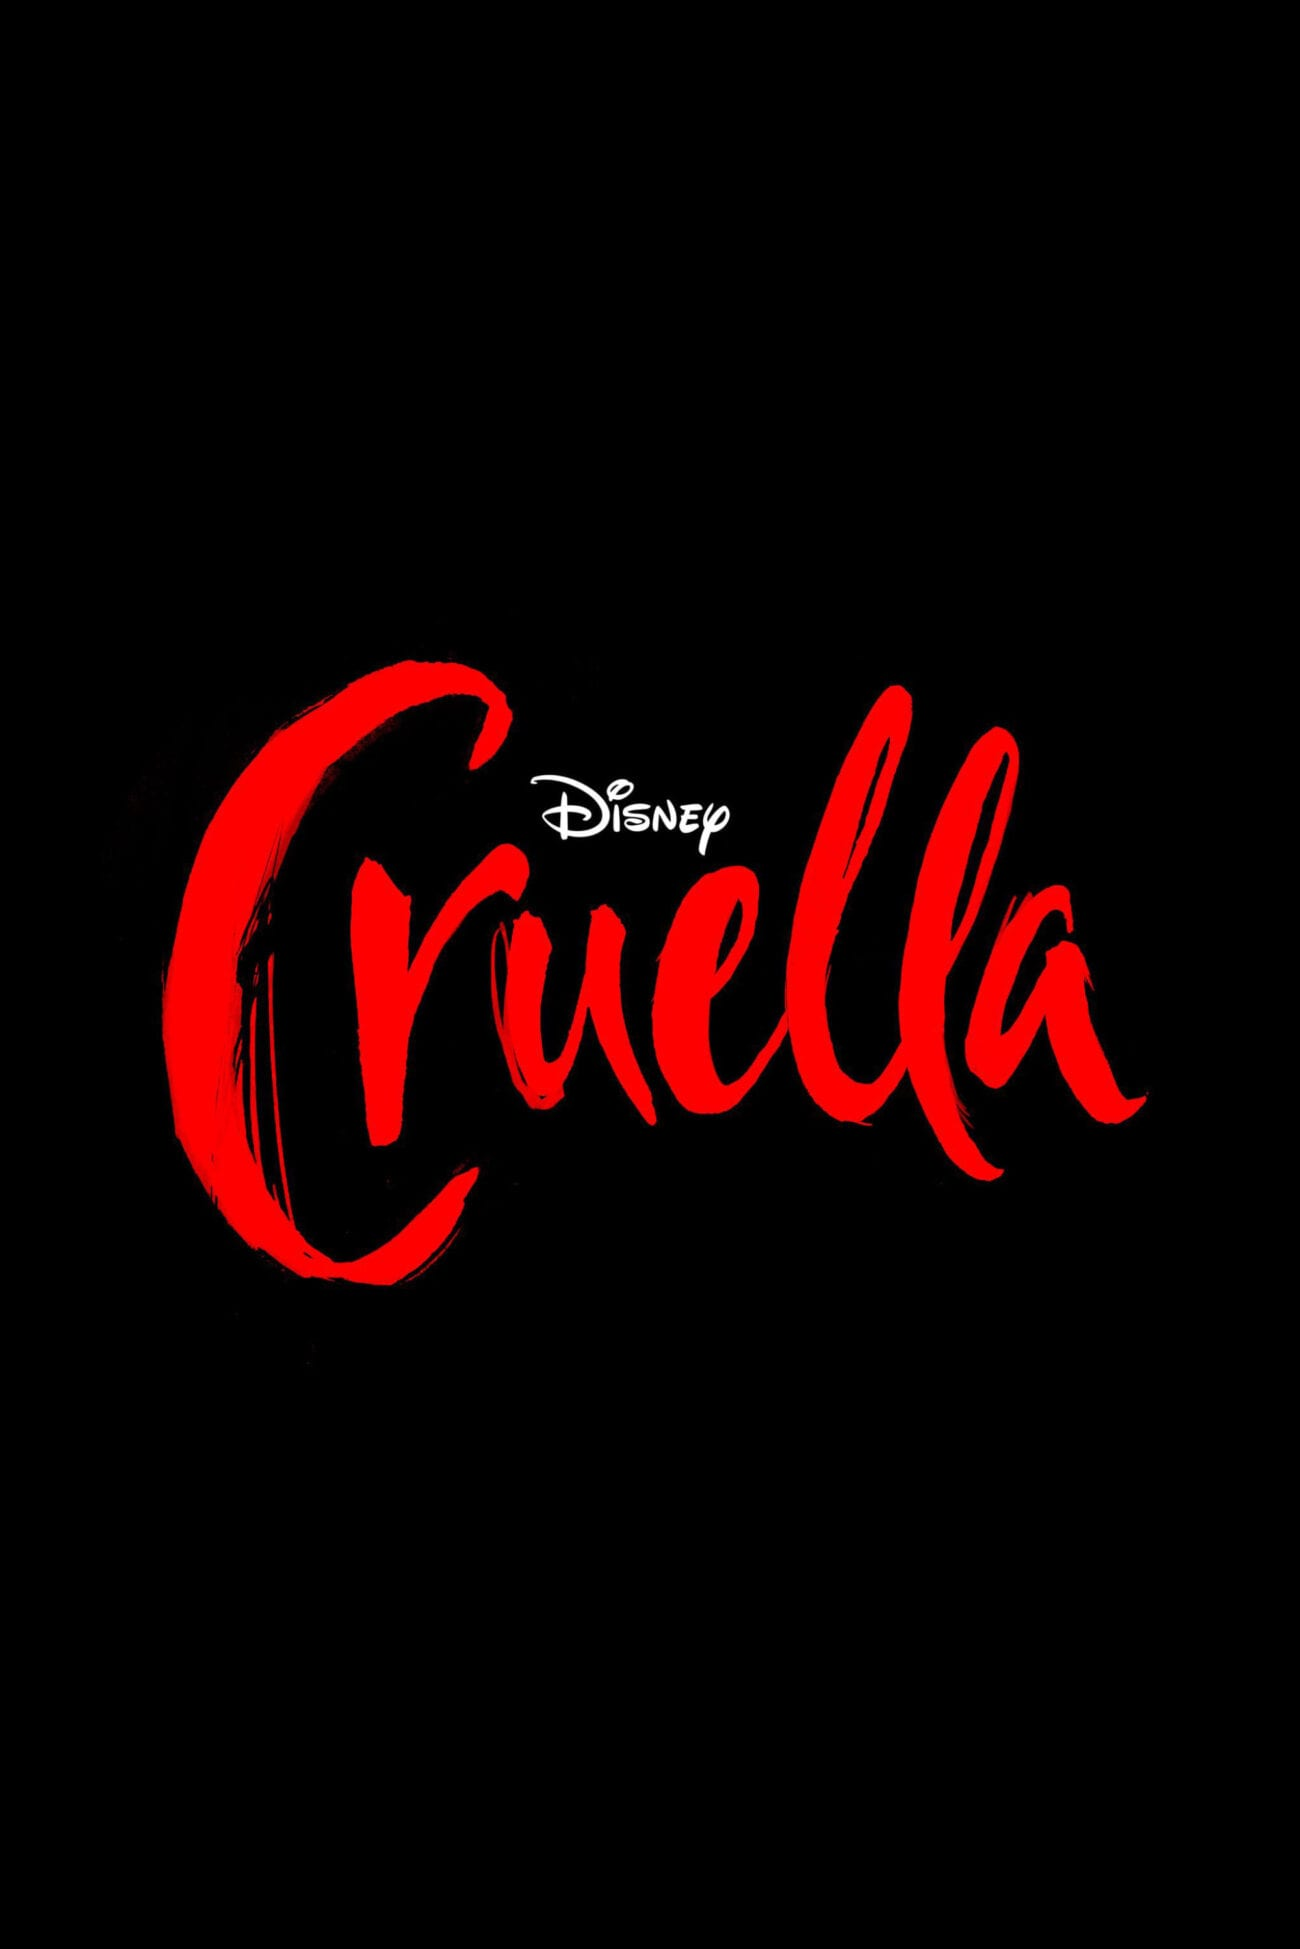 Disney's Cruella has released a new image, and it's spot on! Will Emma Stone kill it as Cruella de Vil? Tomorrow's trailer should tell us everything.